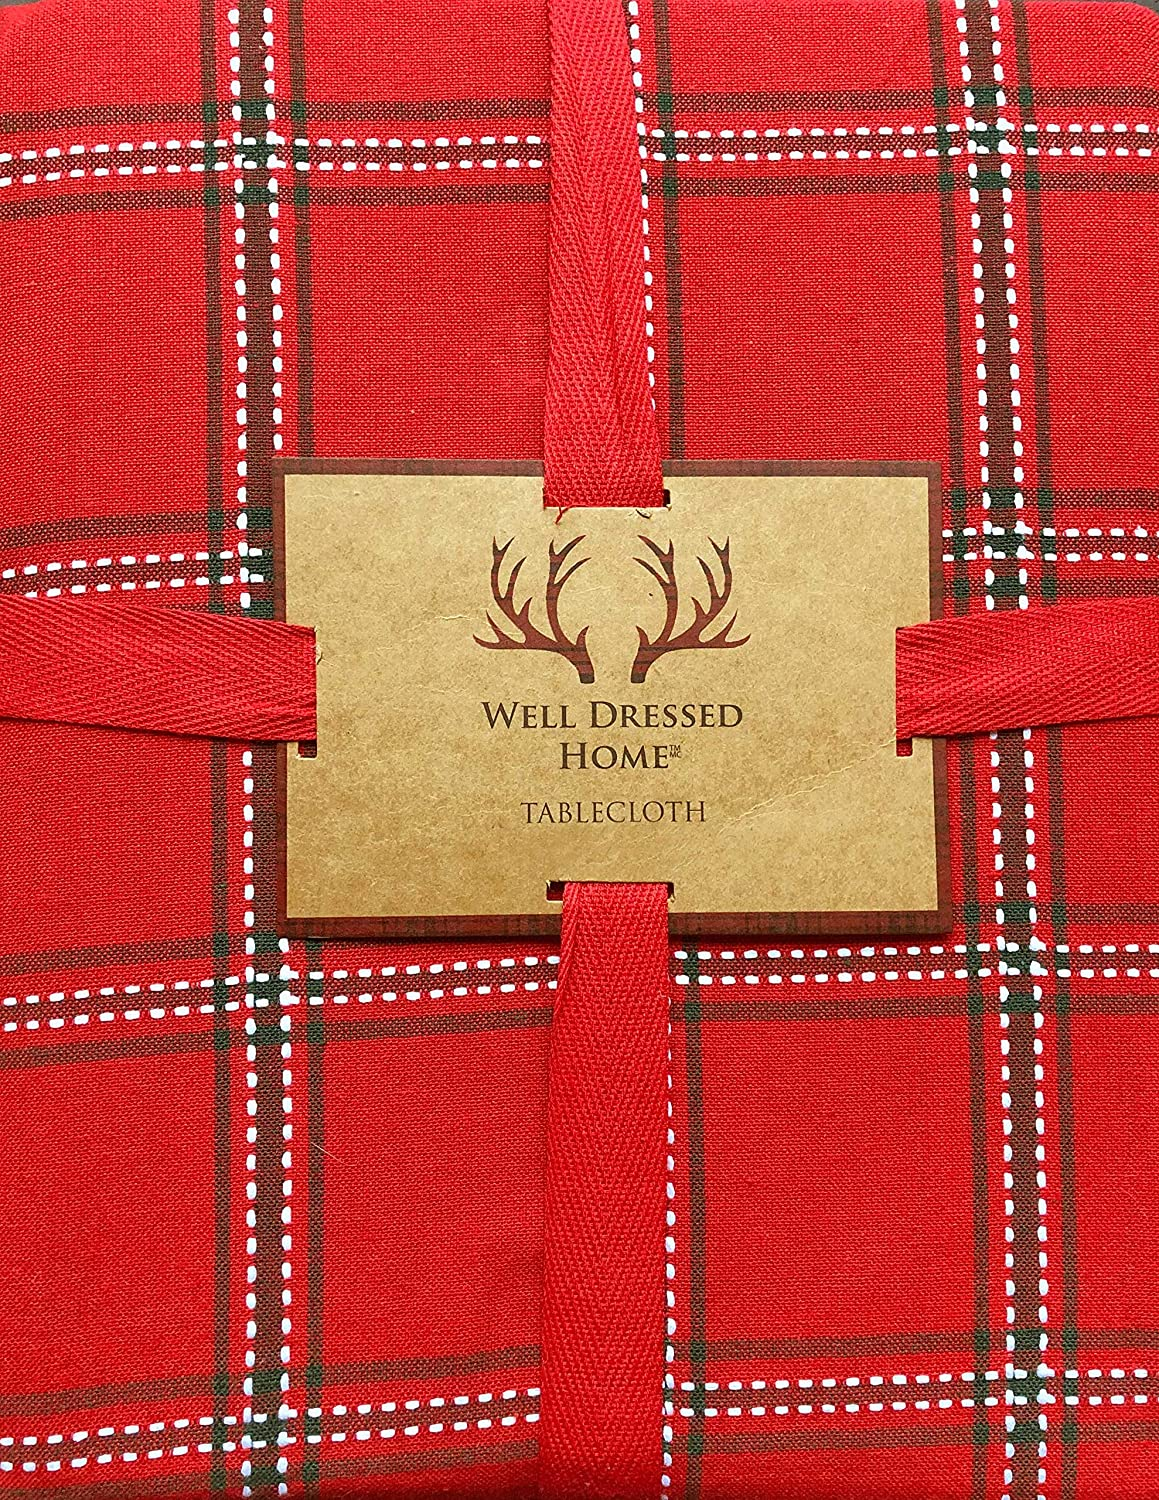 Well Dressed Home Tablecloth Holiday Christmas Checked Plaid Pattern with Thin Green Stripes on Red, and Thin Sewn White Thread Stripes 60 Inches x 84 Inches